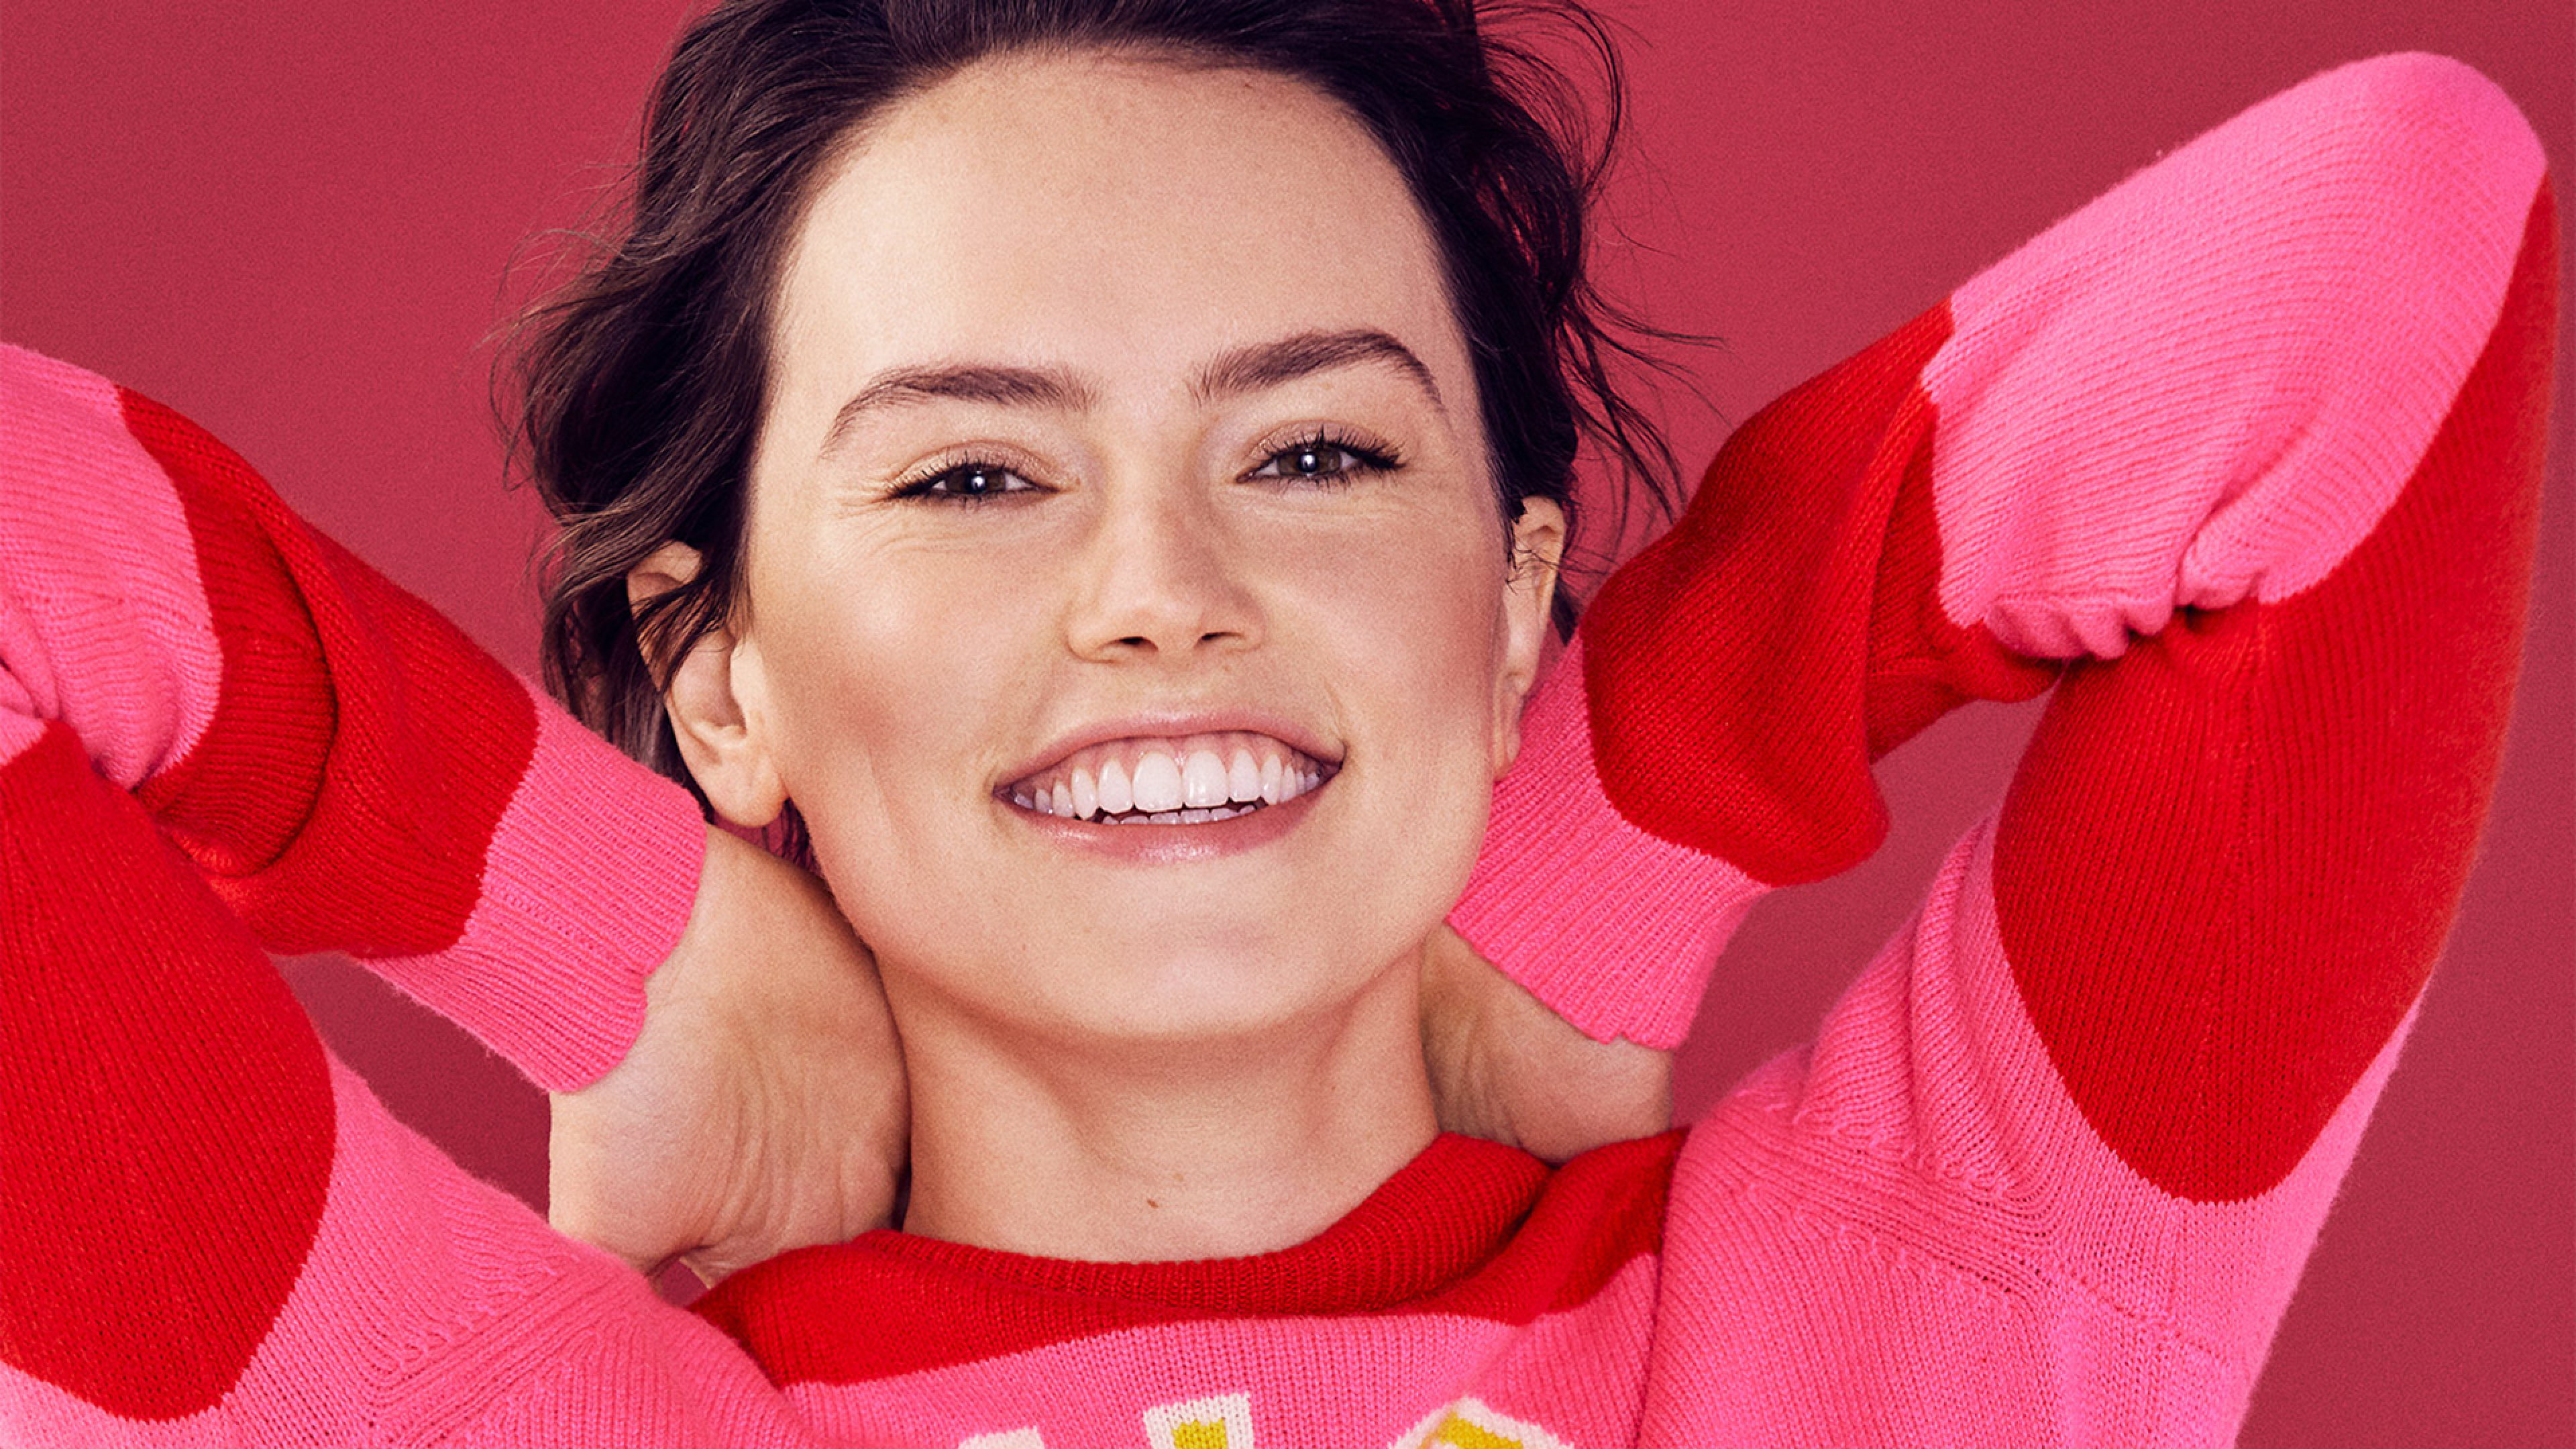 3840x2160 Cute Daisy Ridley 4K Wallpaper HD Celebrities 4K 3840x2160